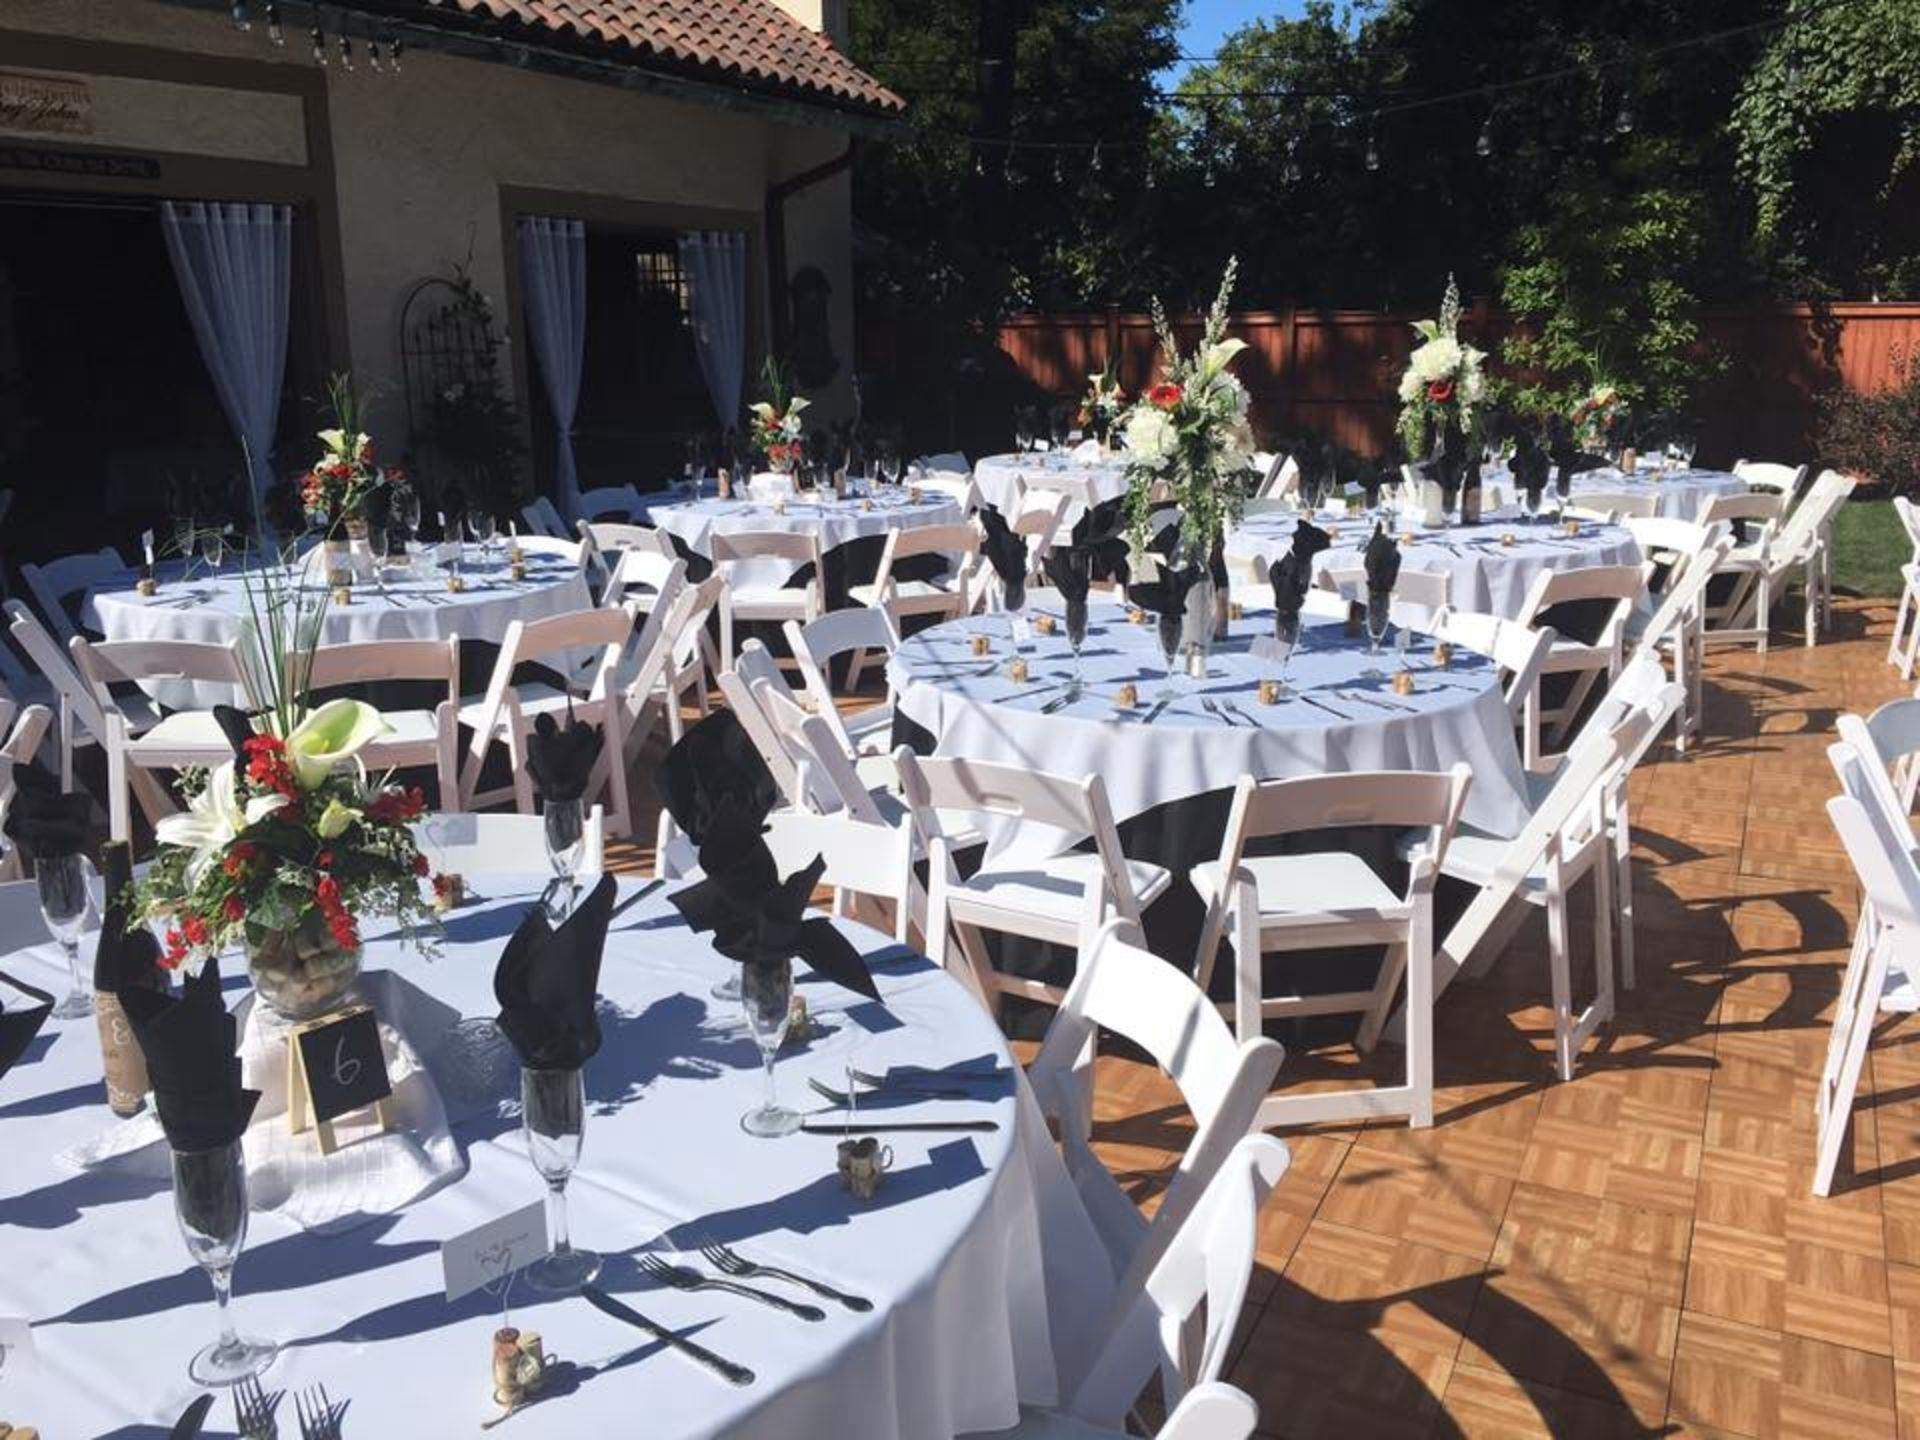 Outdoor dining setting for a wedding with tables set with flowers, napkins, glasses and utensils